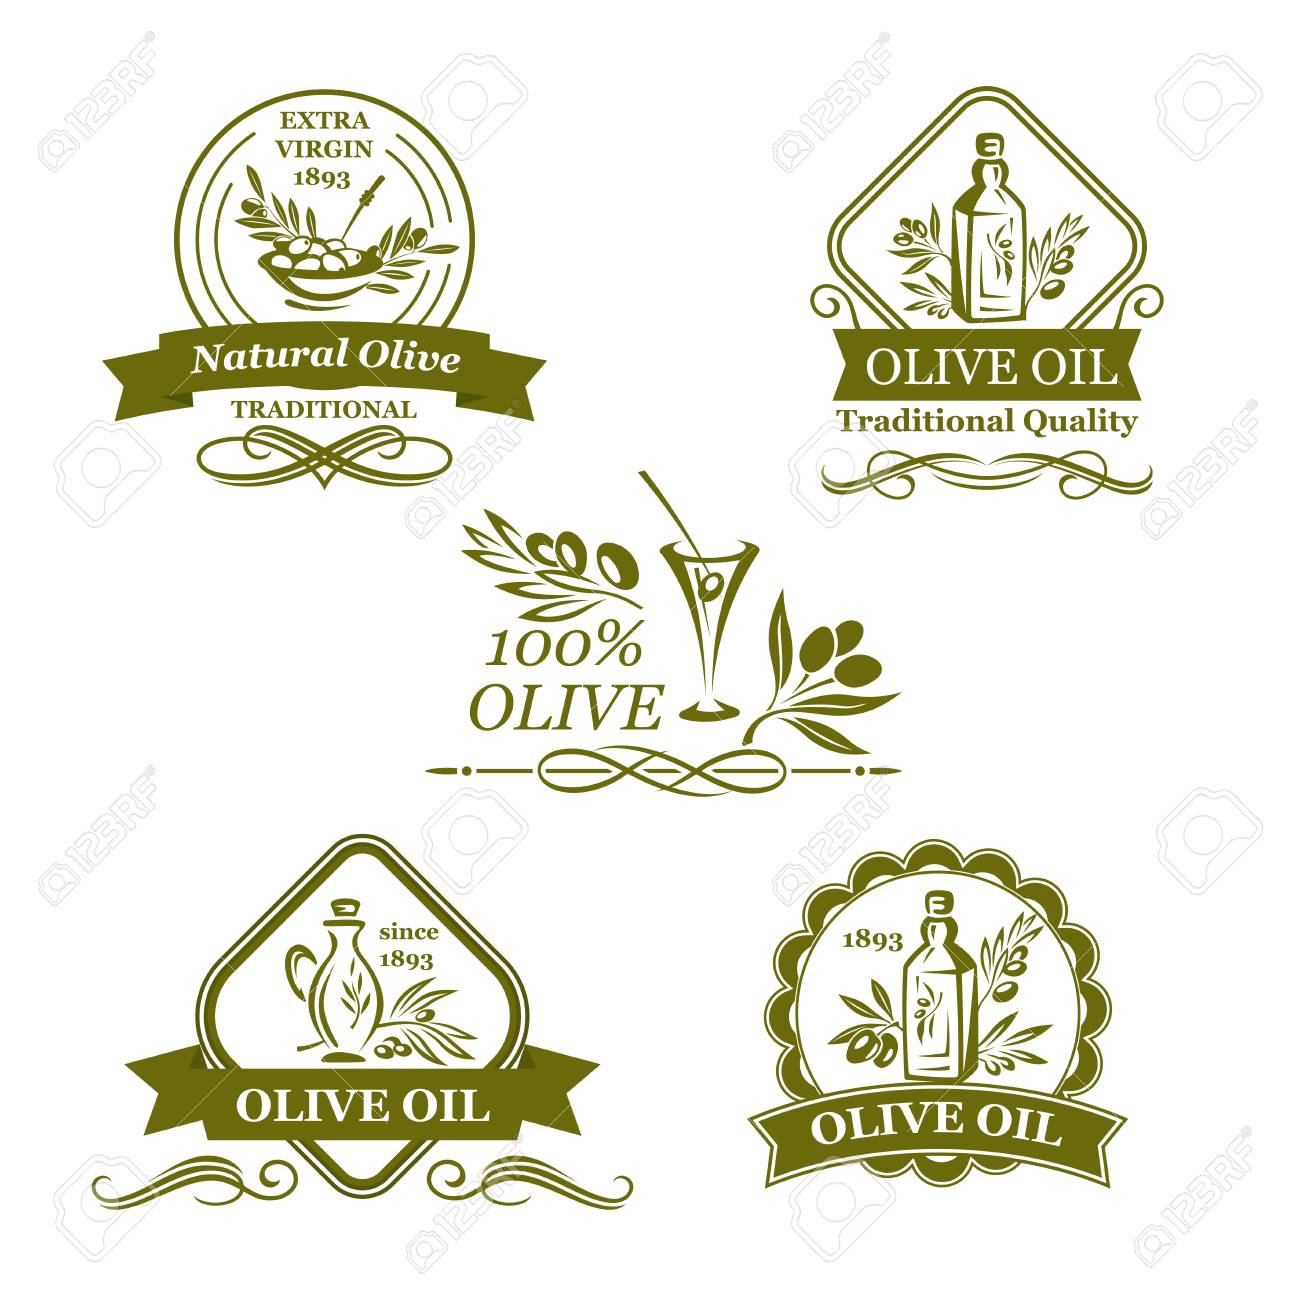 Olives Icons For Olive Oil Product Labels Or Italian Cuisine Design